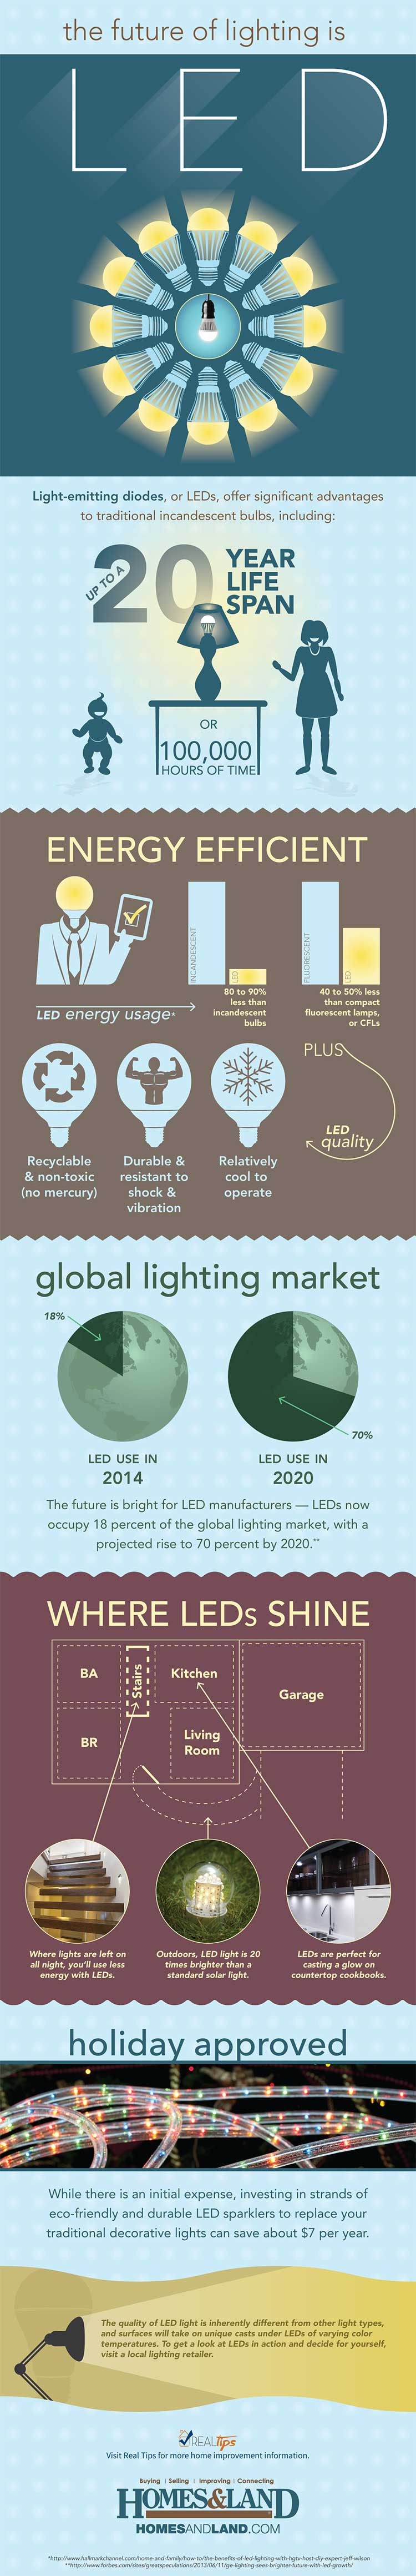 The Future of Lighting is LED by Homes & Land